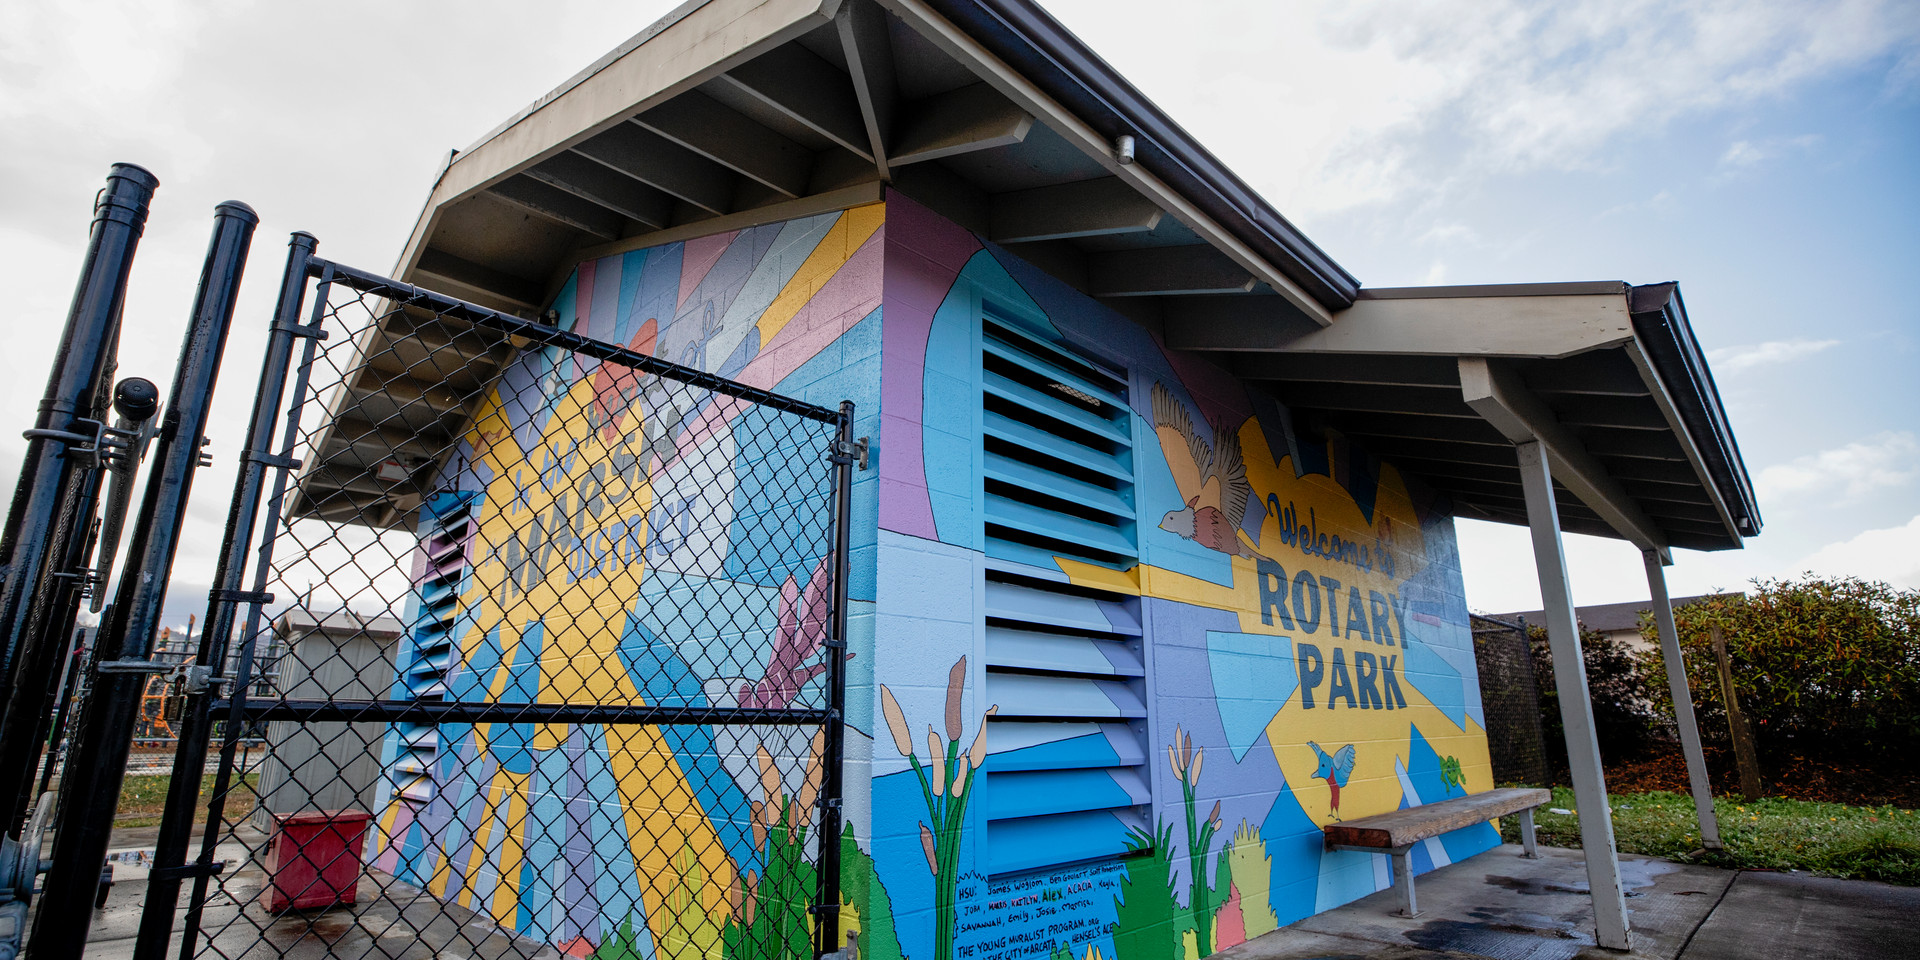 Rotary Park - The Mural Man